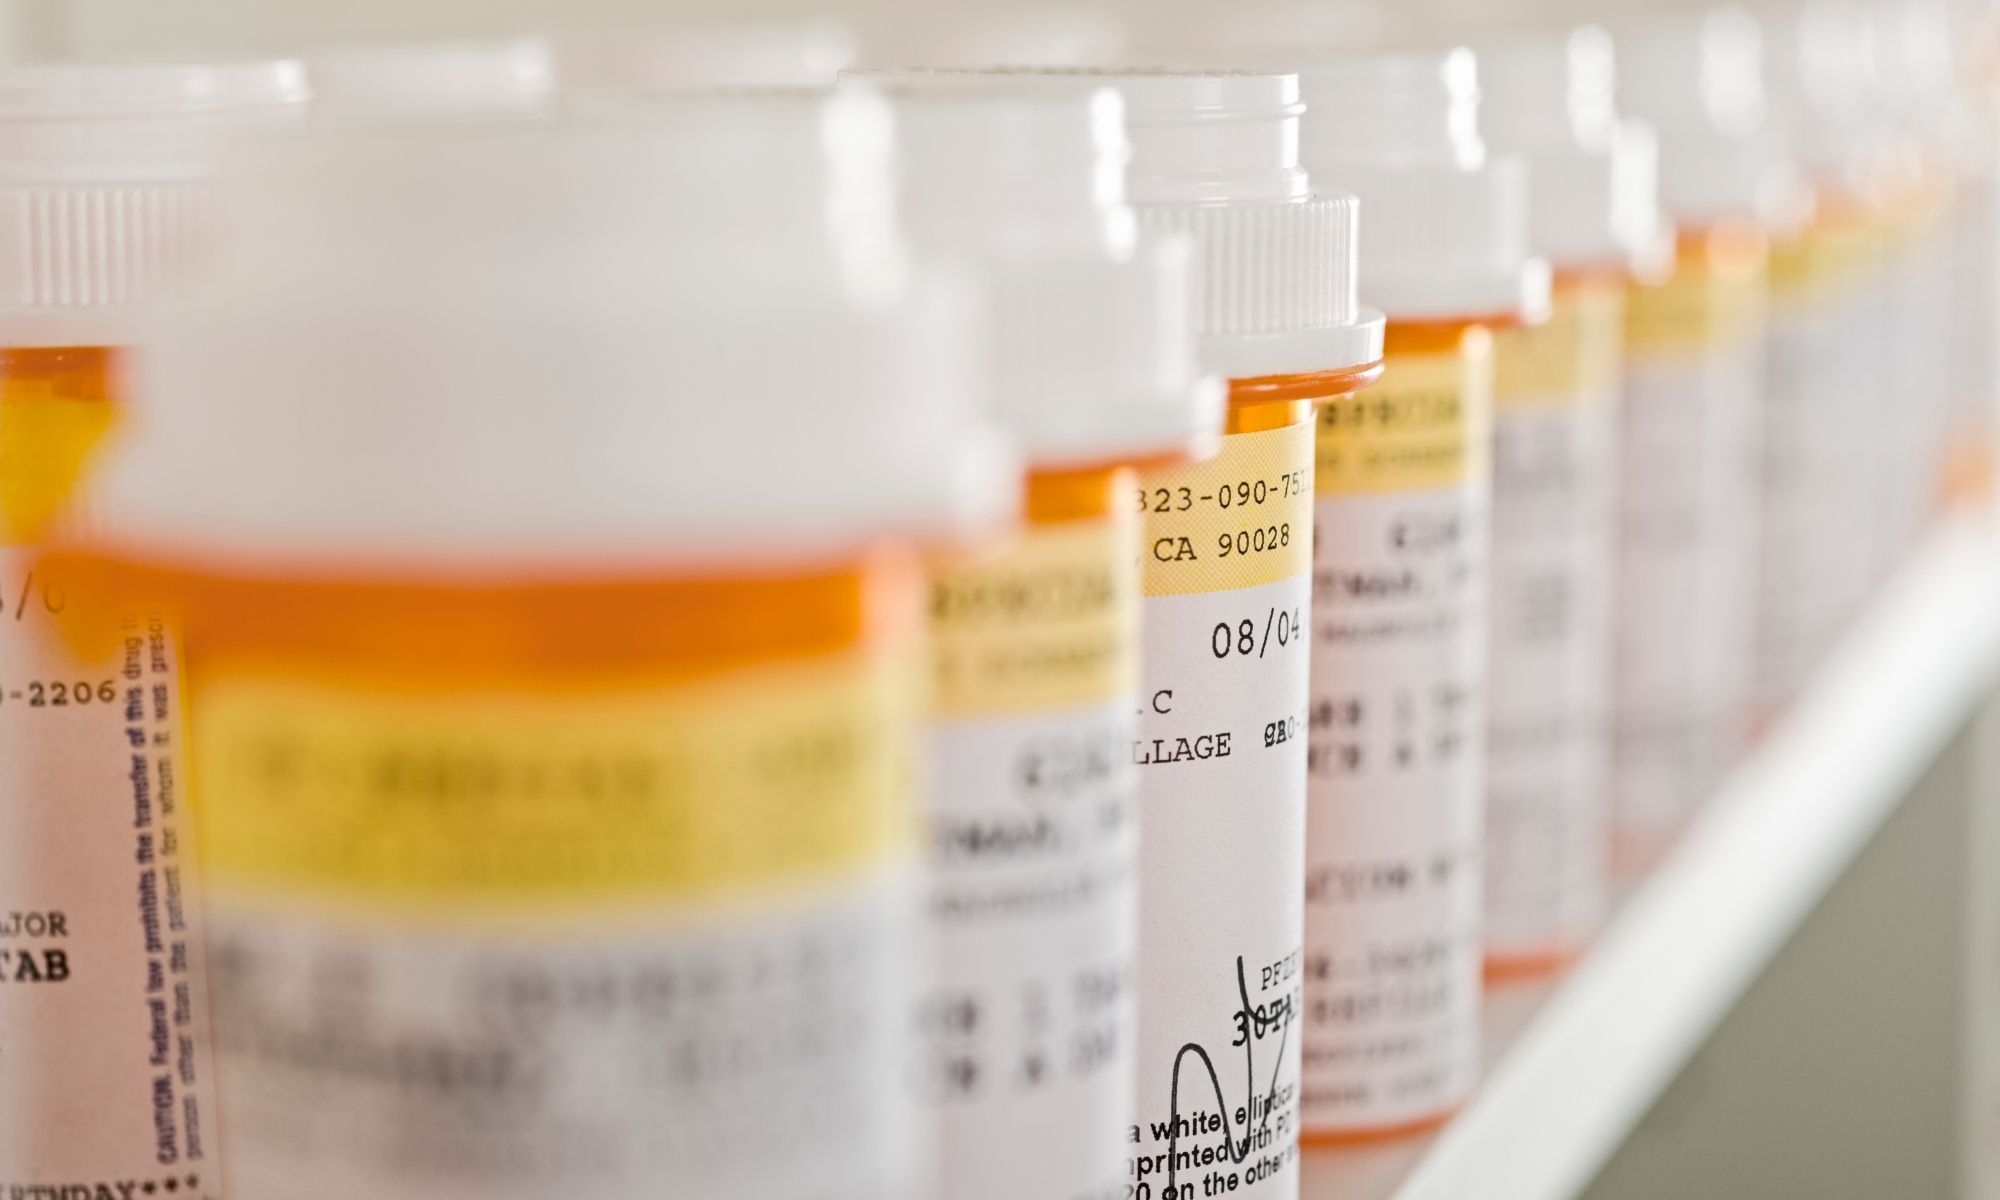 Design Tips for a Safer Medication Label